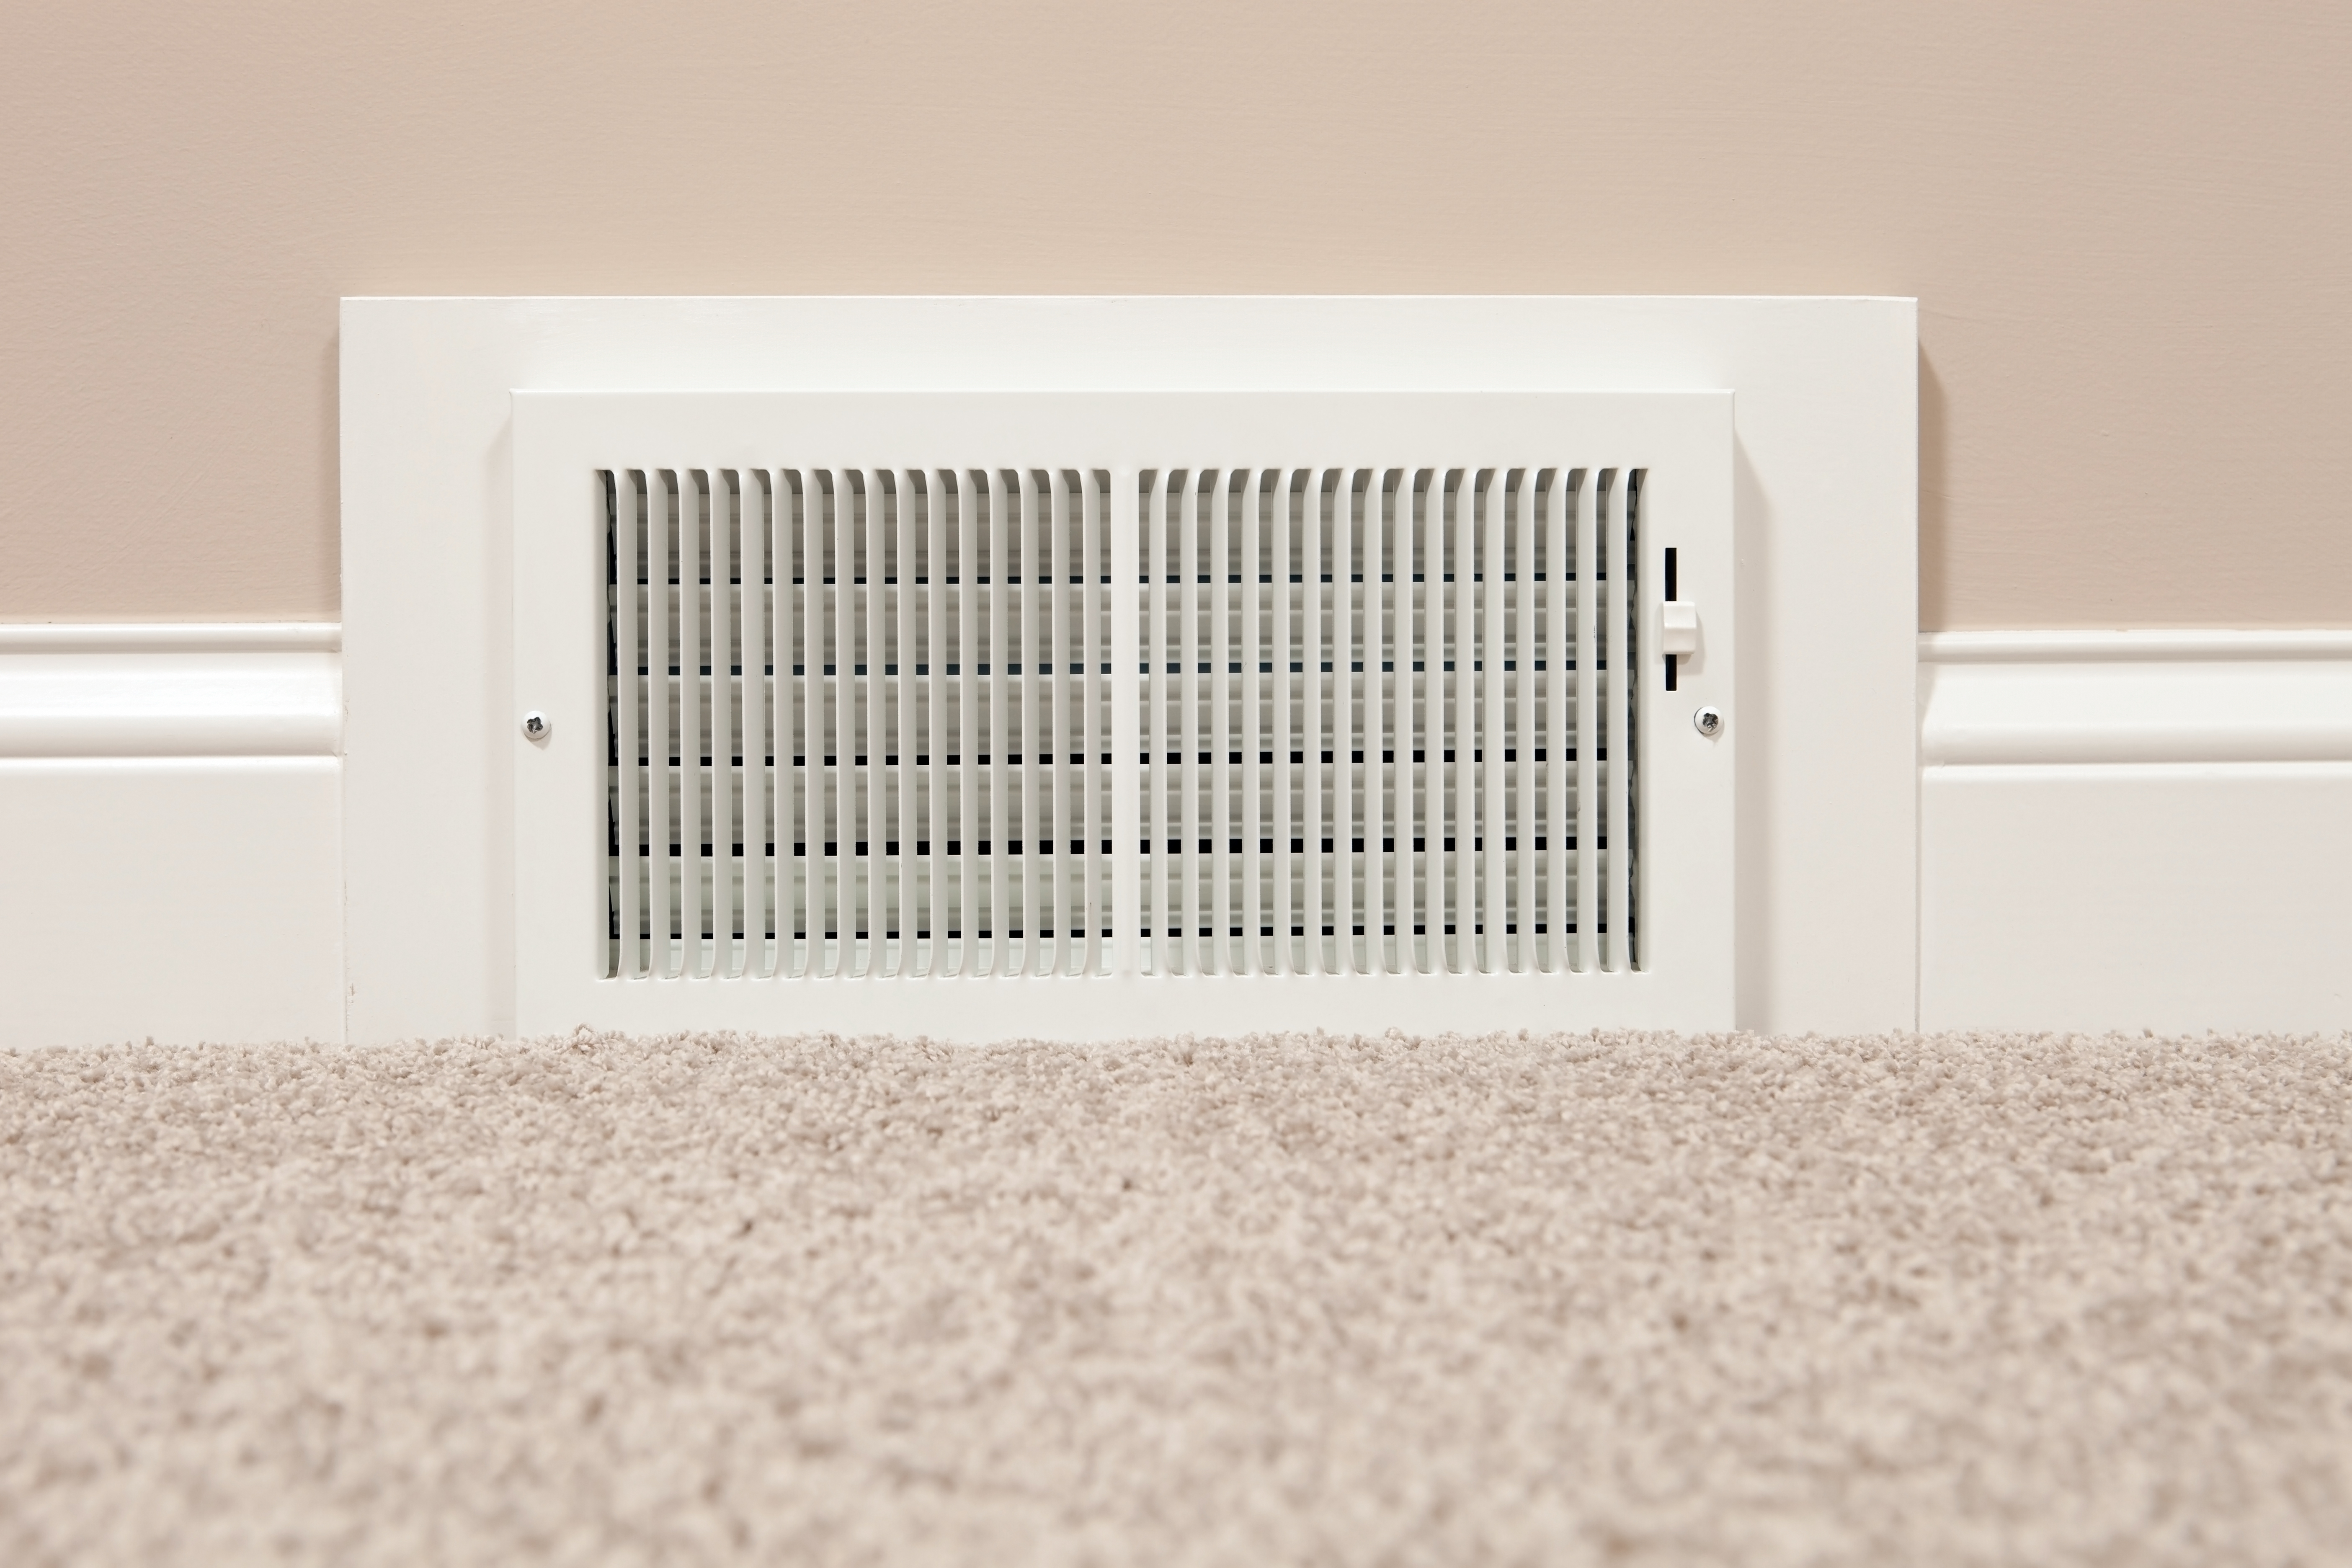 Should I Have Air Filters in My Home Vents? | Hunker